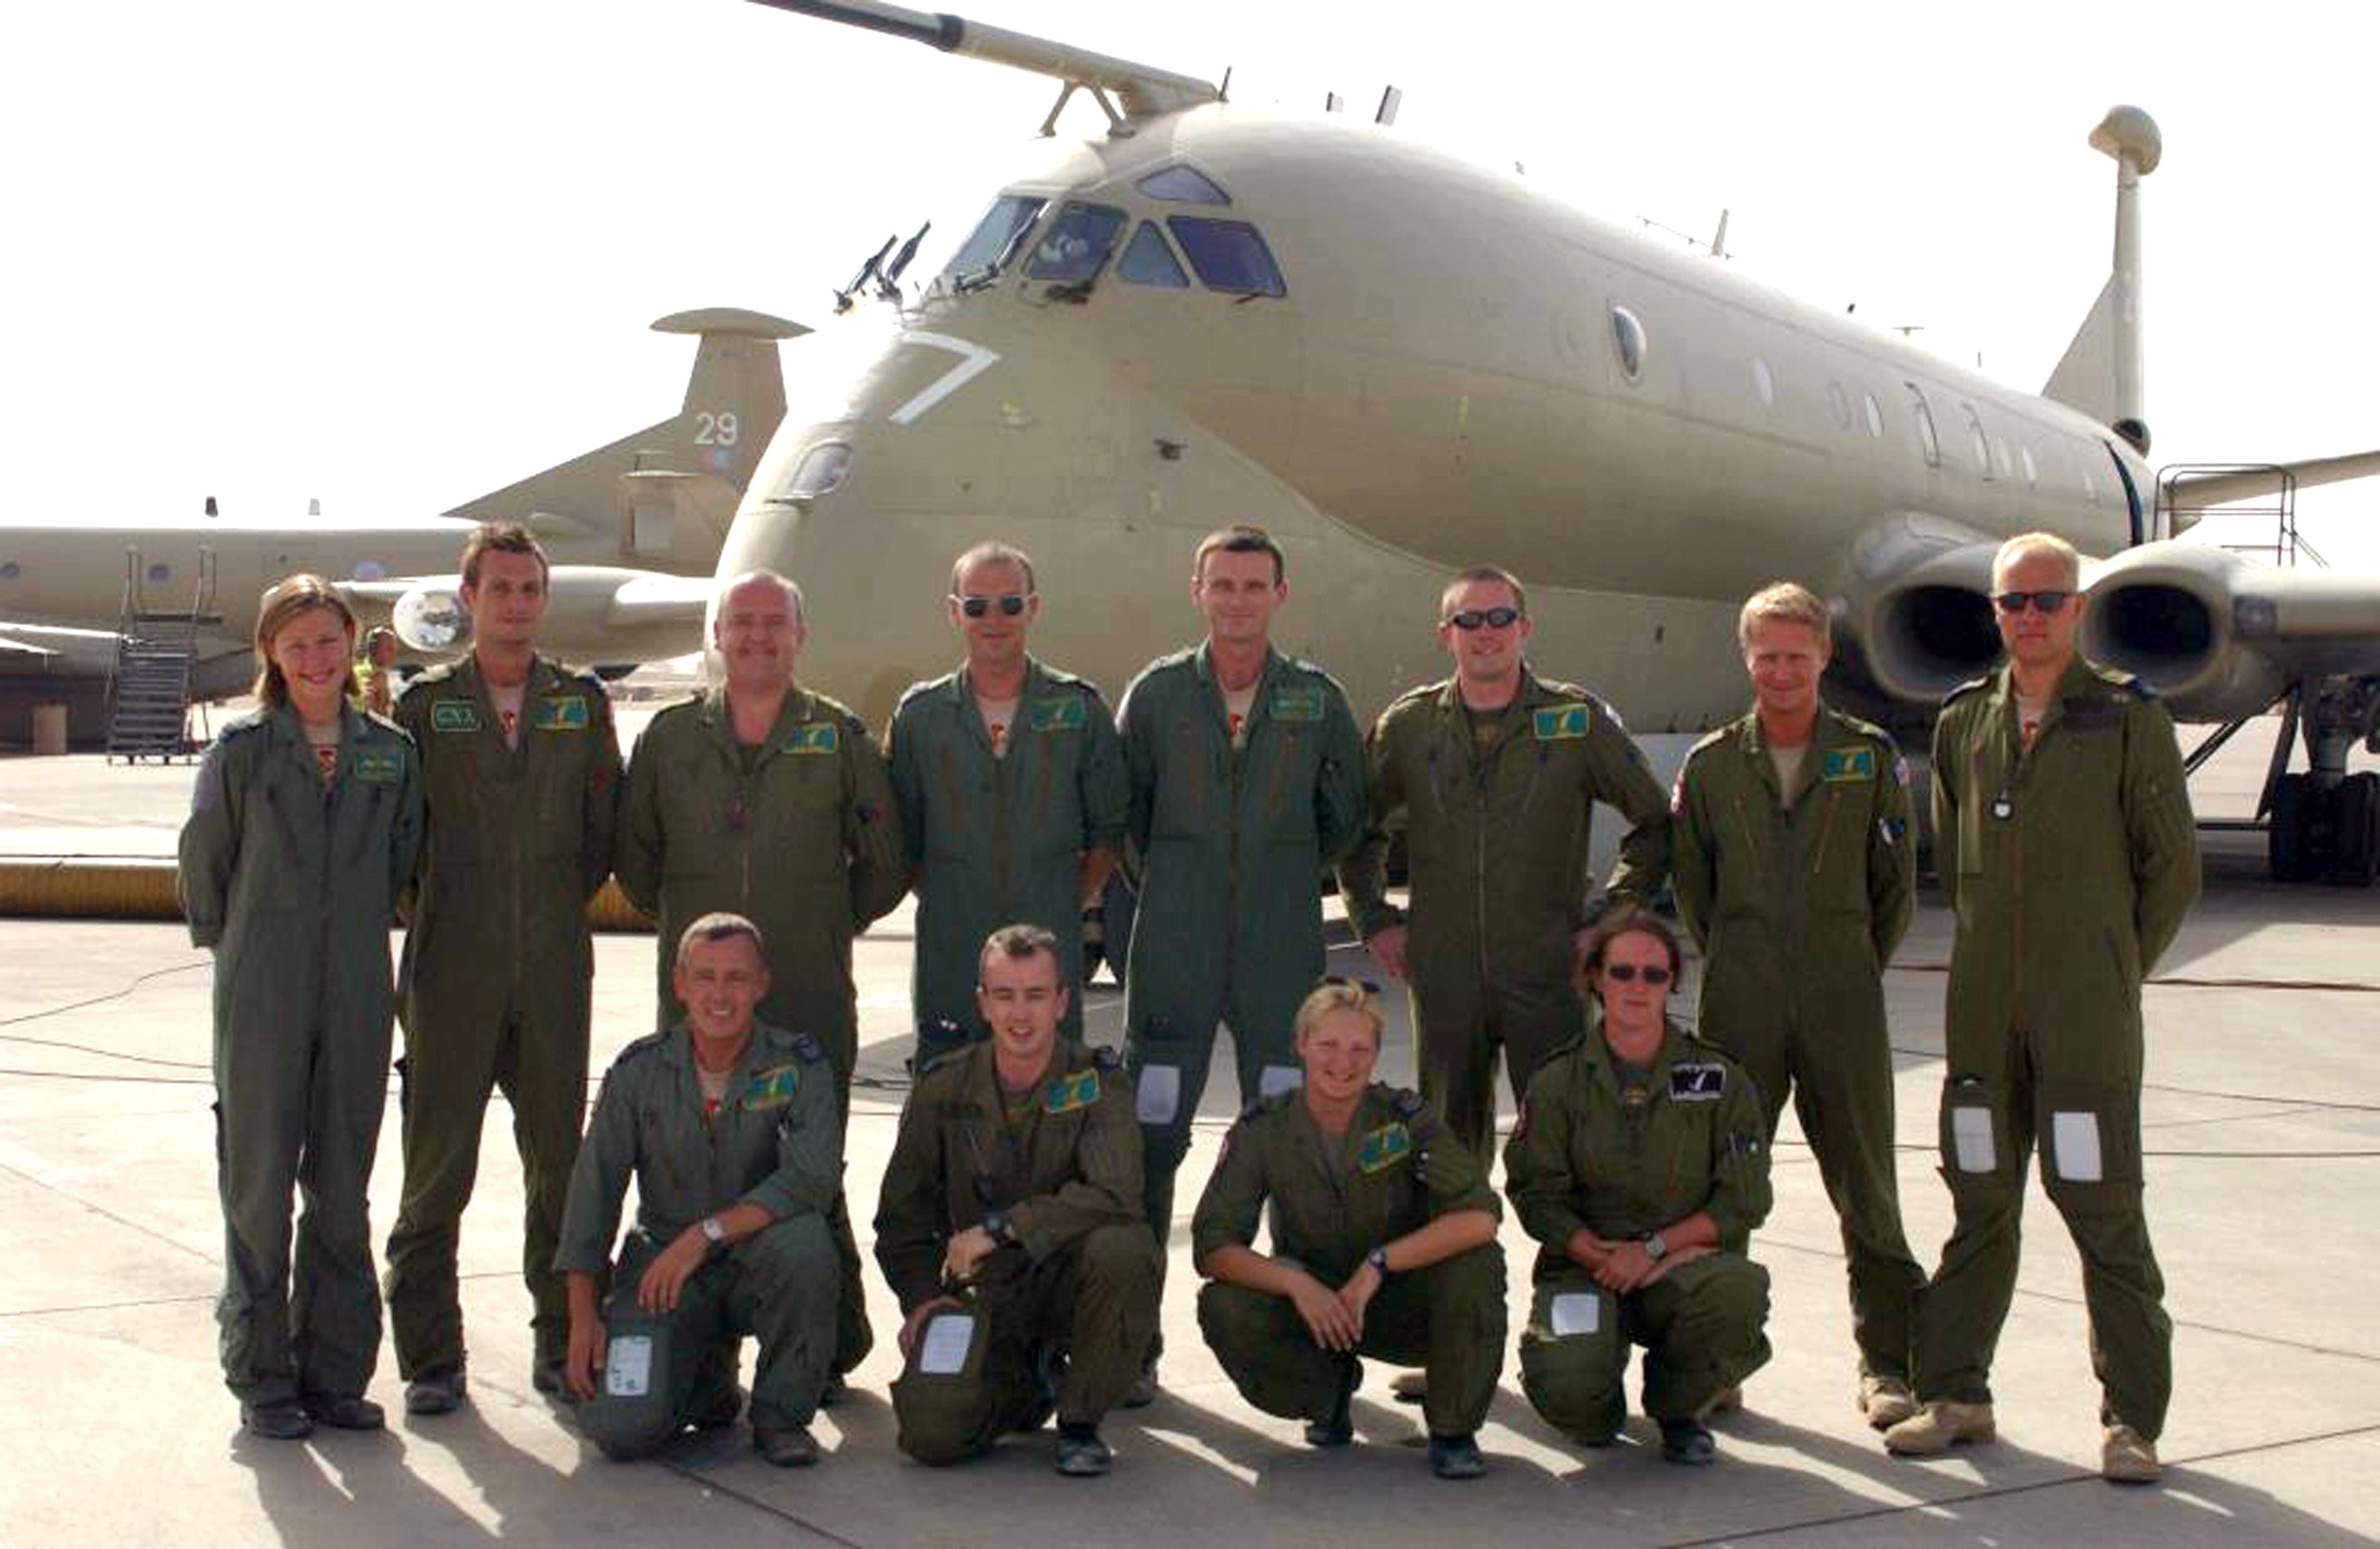 Shelley Charlton (front row, third from left) pictured with her former RAF colleagues in...